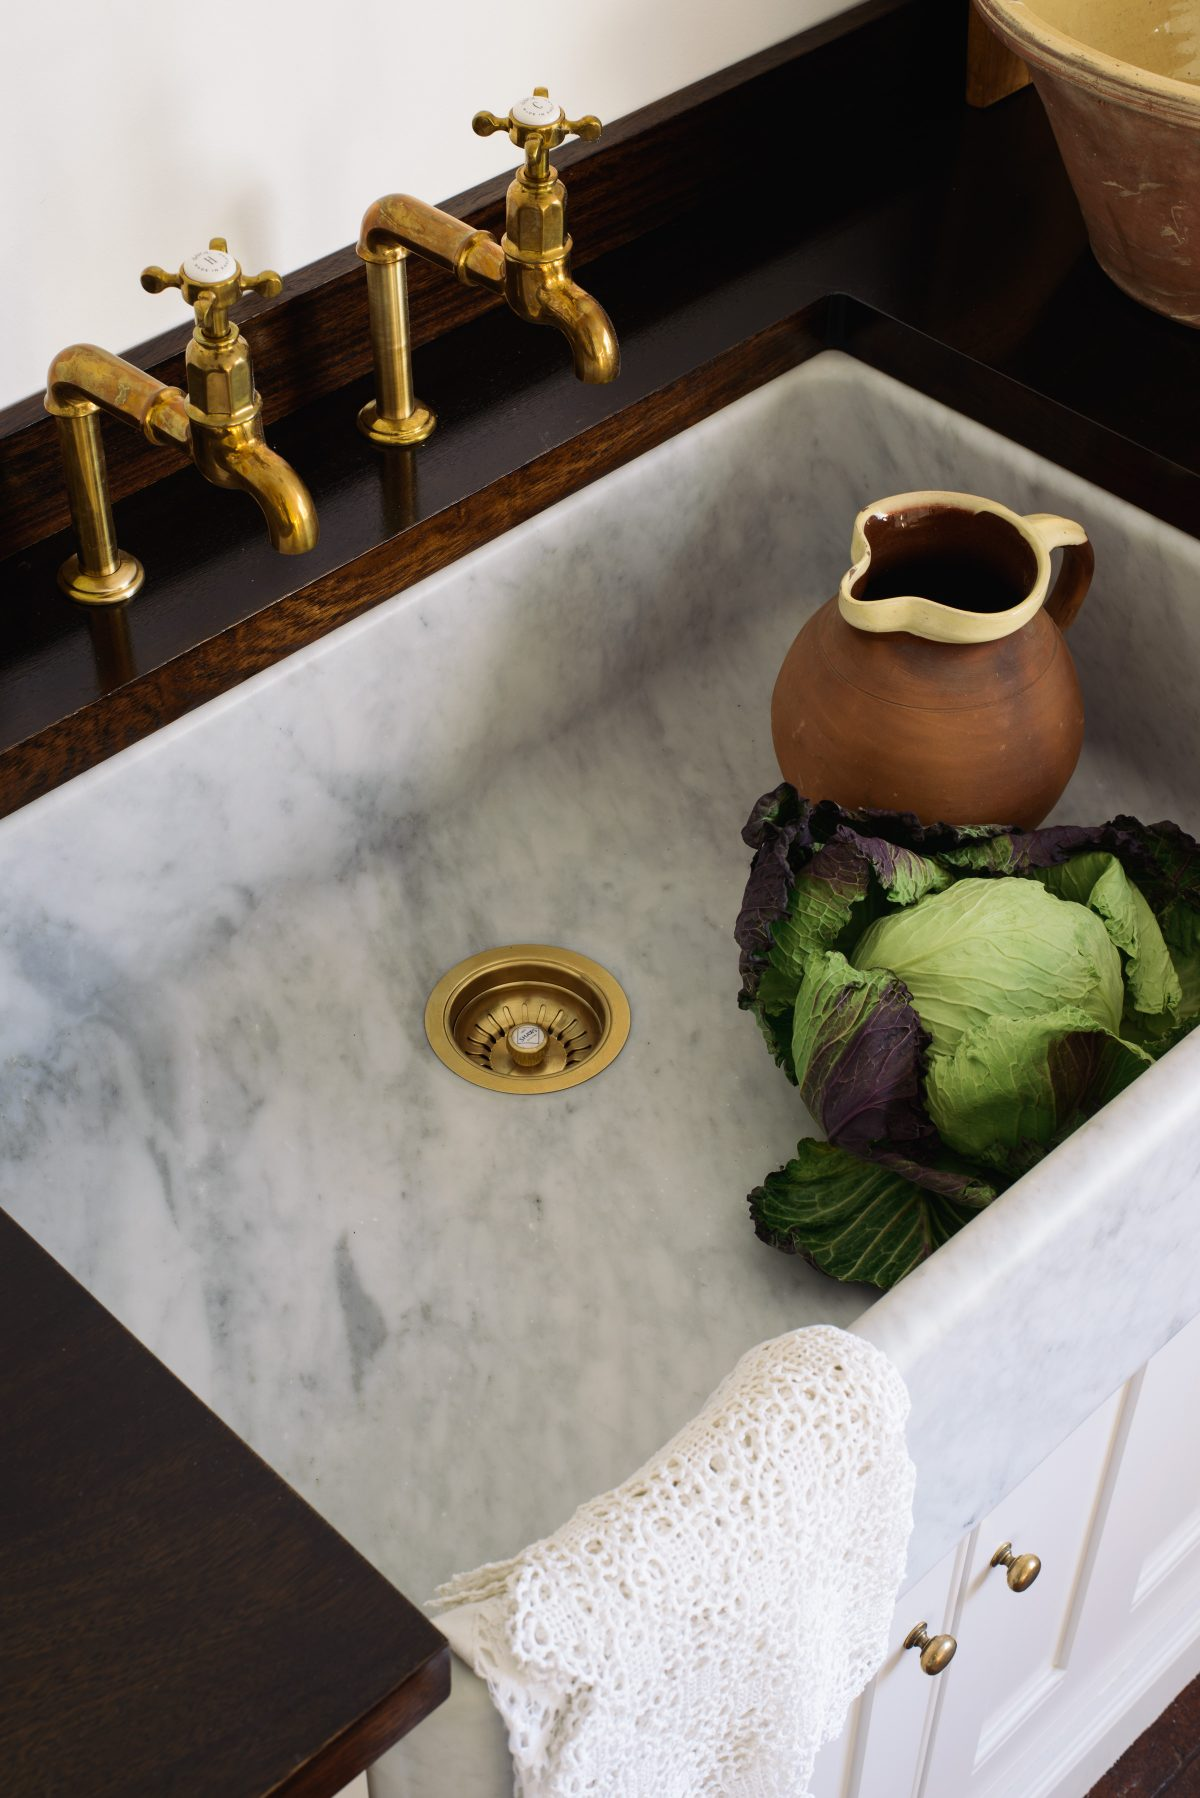 The very handsome Tuscan Farmhouse 800 Single Sink from our marble sink collection.